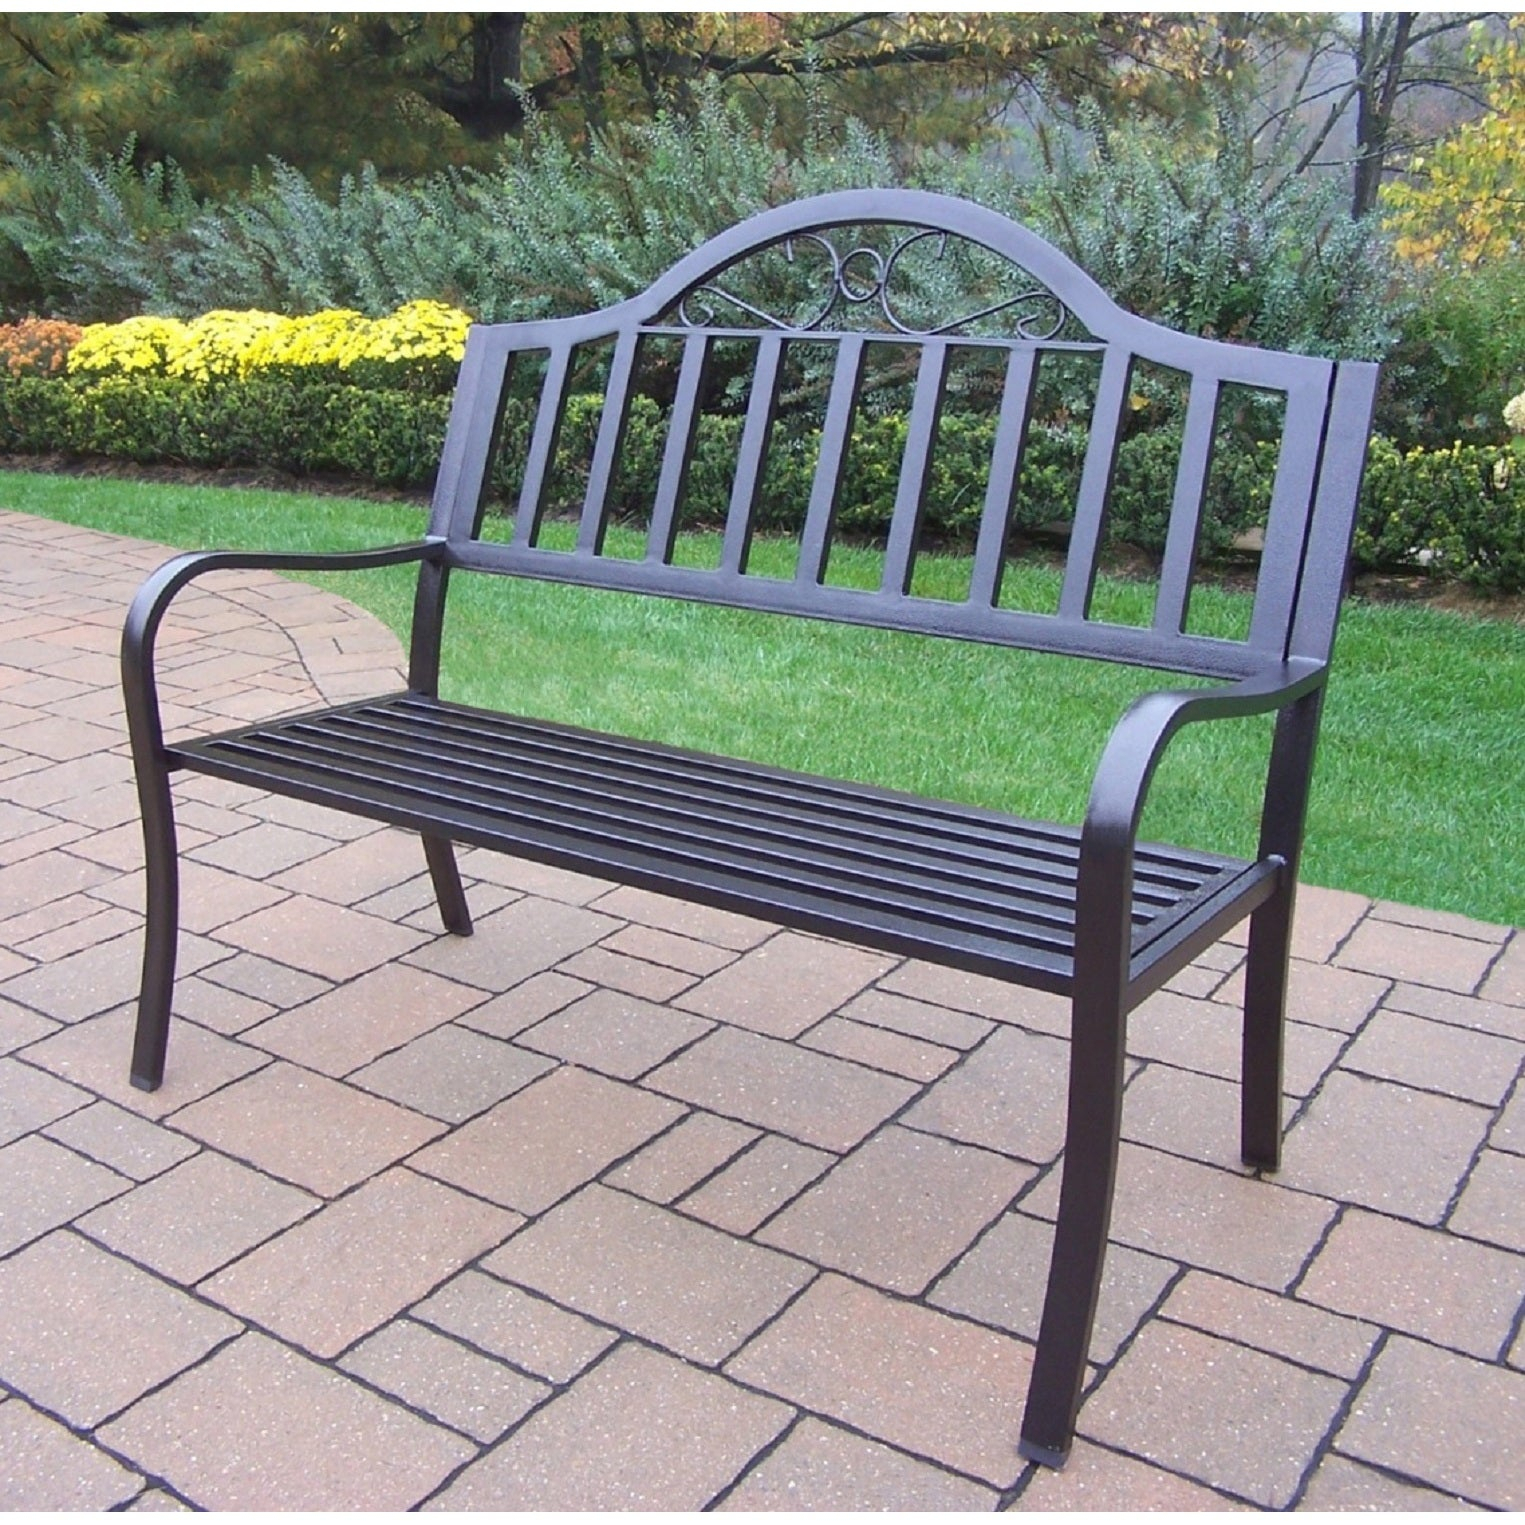 Hometown Wrought Iron Bench Intended For Celtic Knot Iron Garden Benches (View 23 of 25)